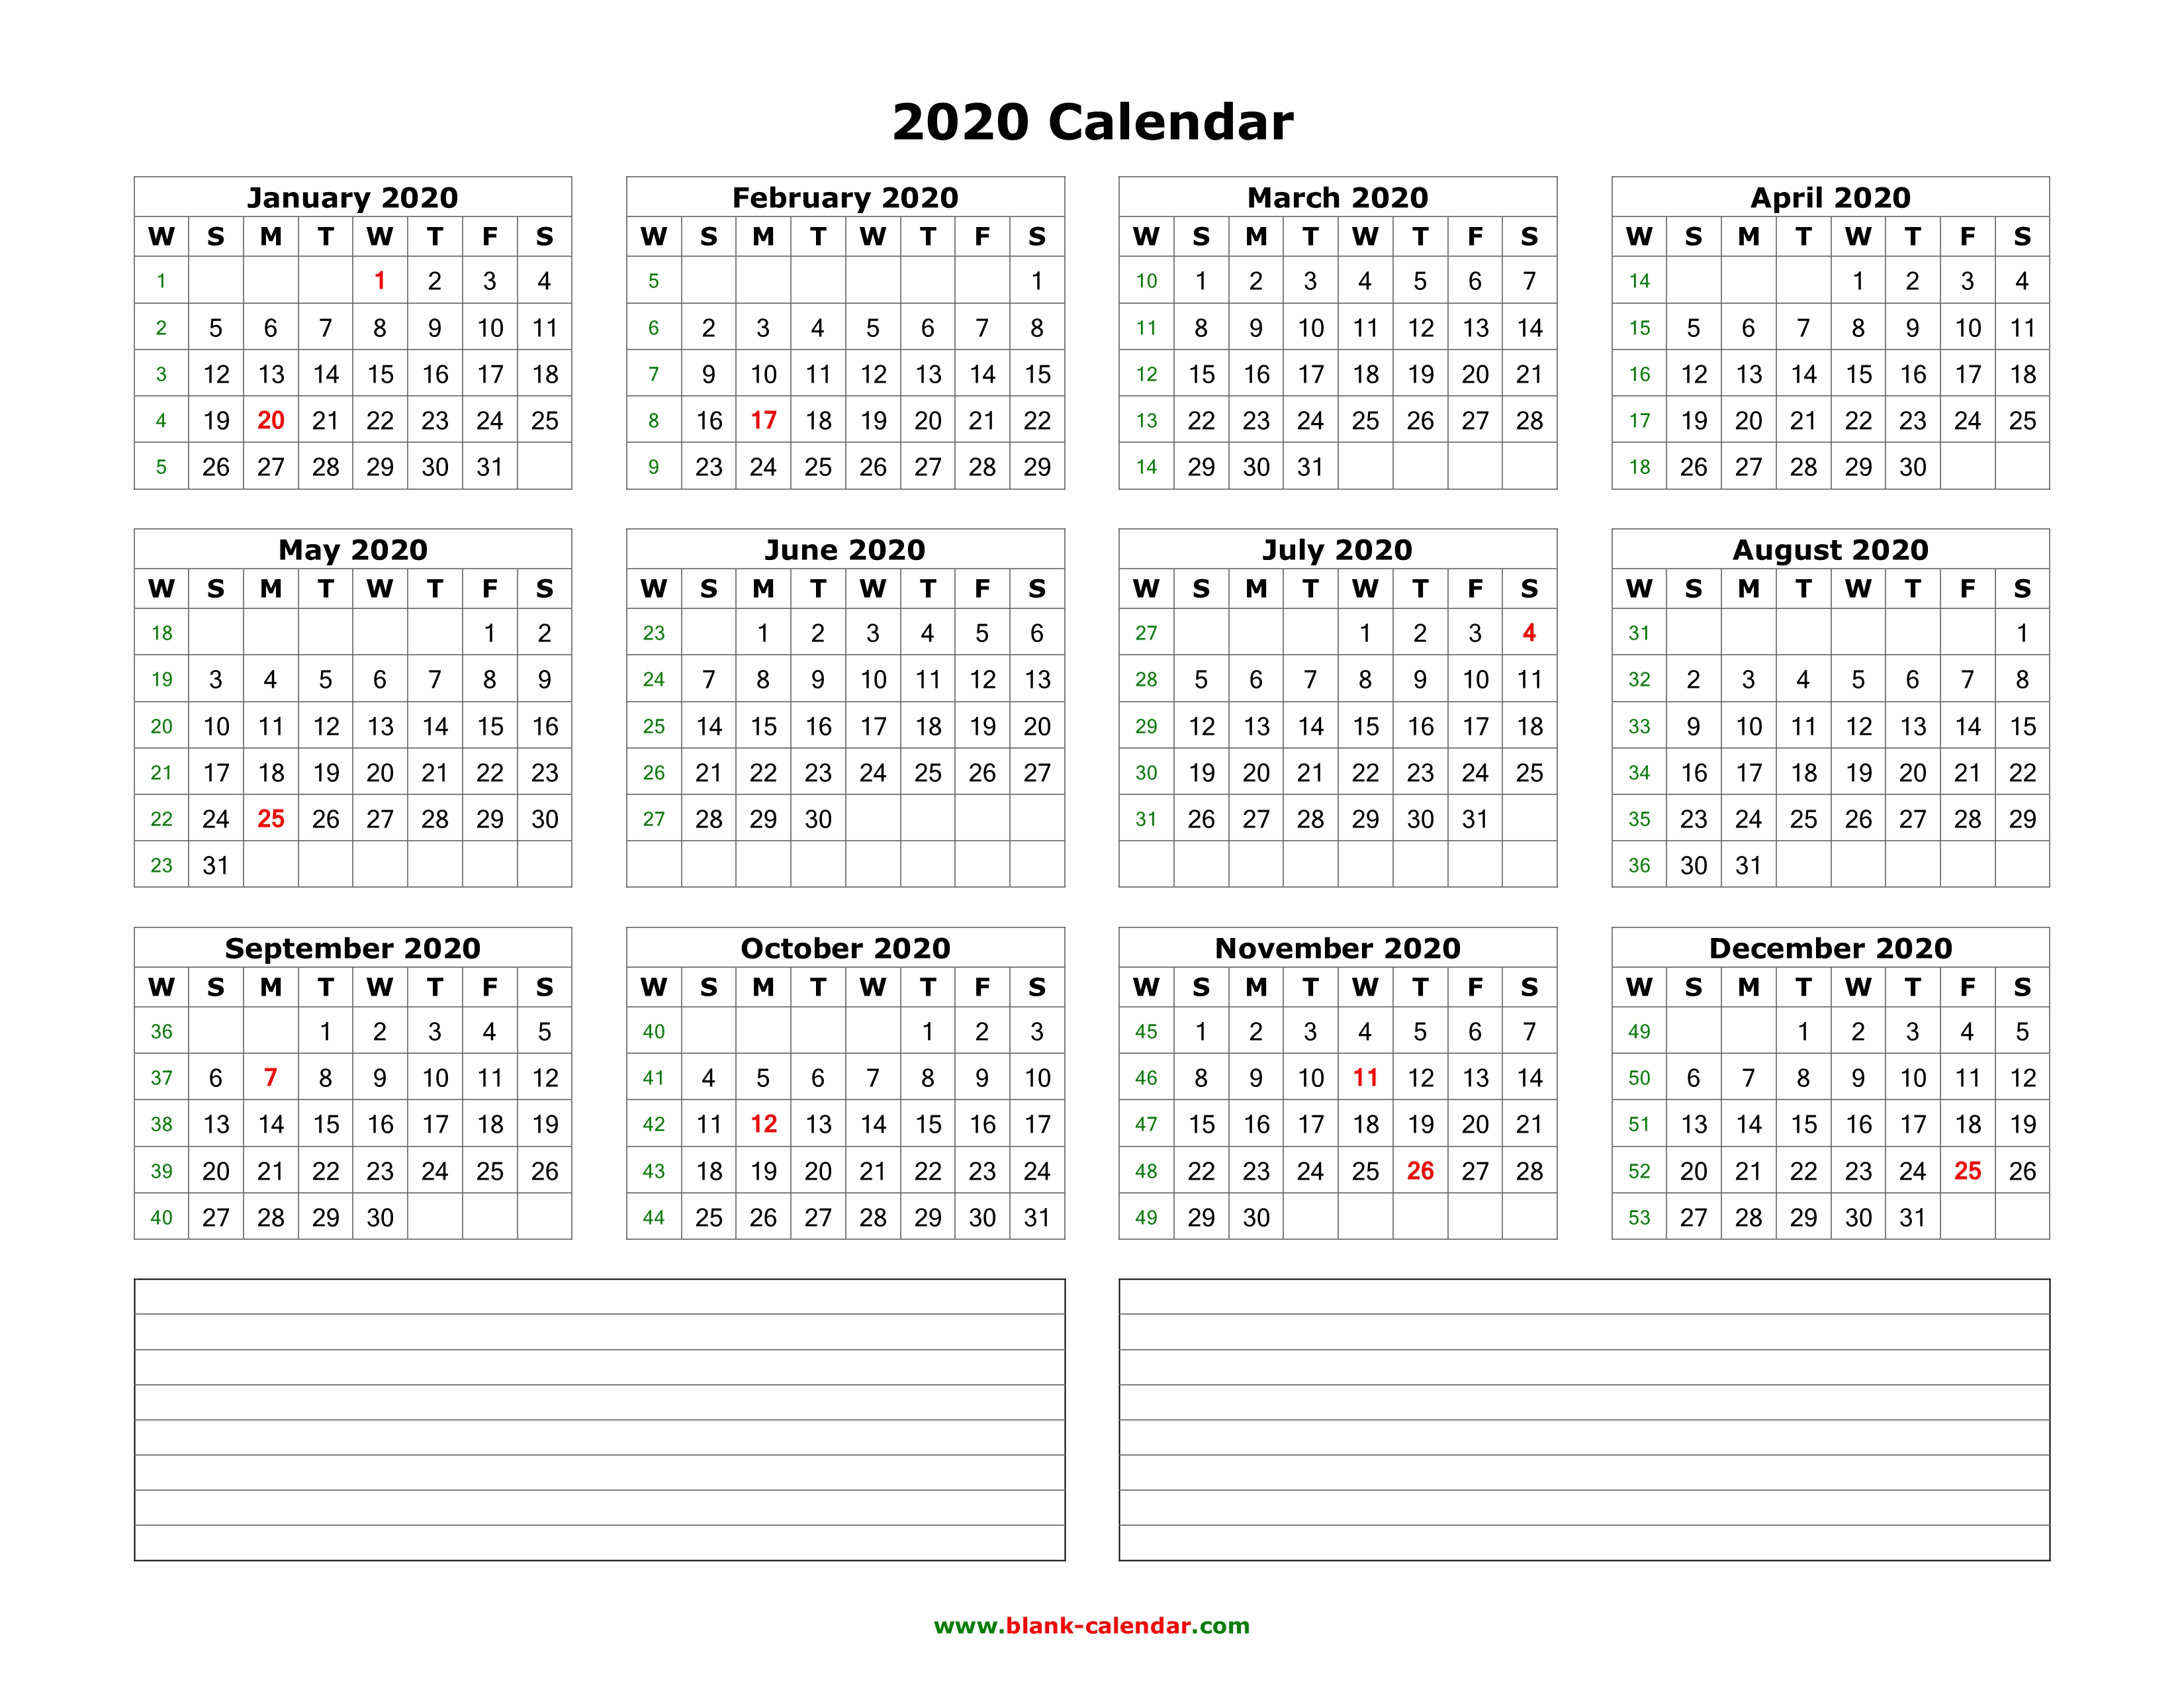 Download Blank Calendar 2020 With Space For Notes (12 Months On One with 12 Month Blank Calendar